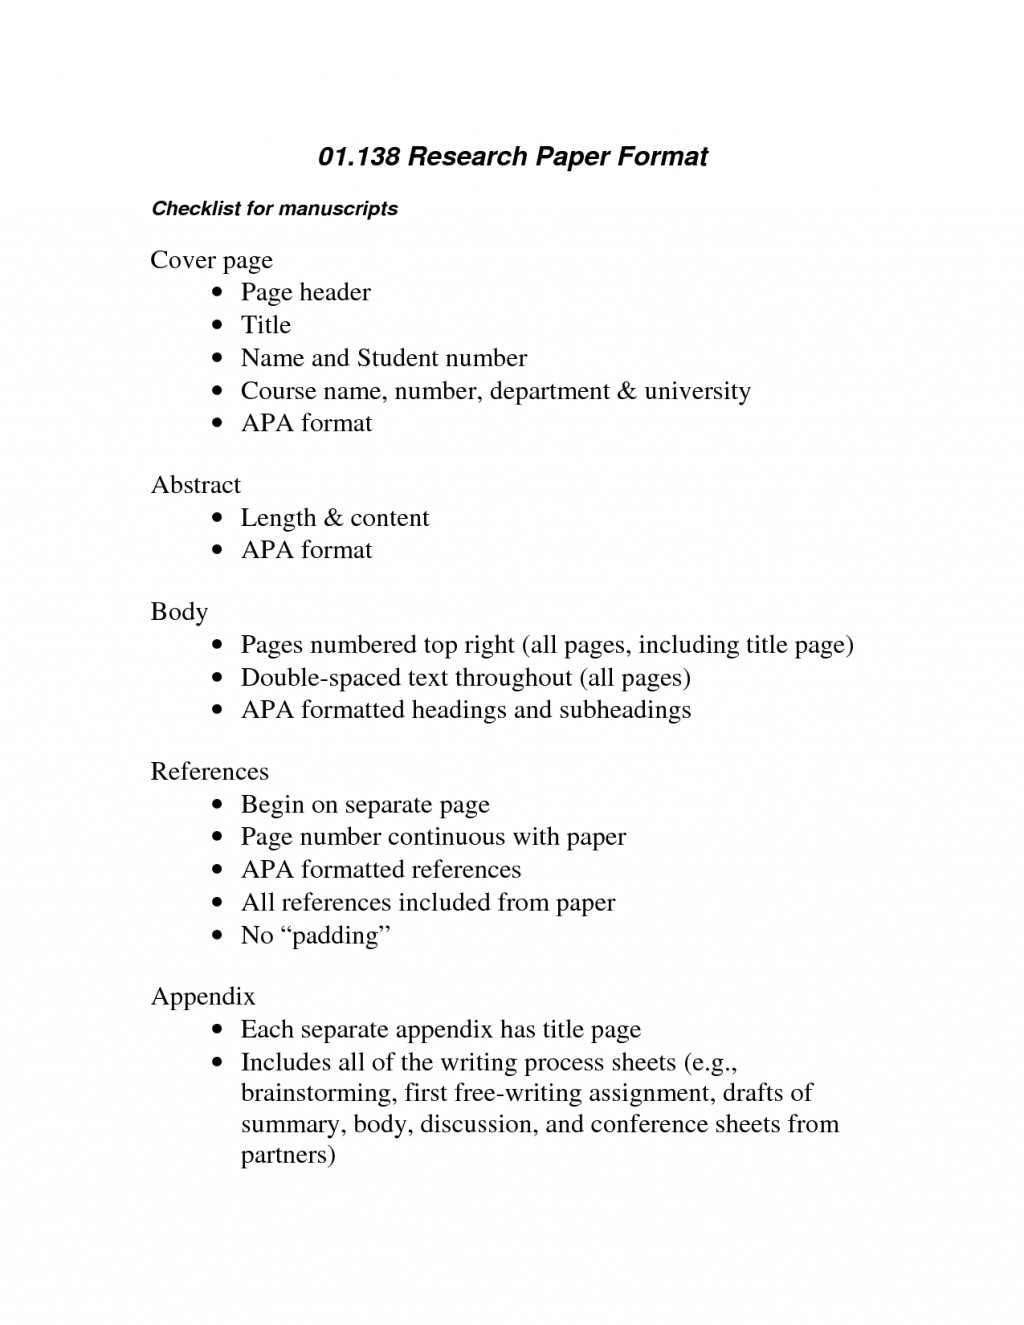 004 Outlines For Researchs Apa Awful Research Papers Sample Outline Paper Style Example Large